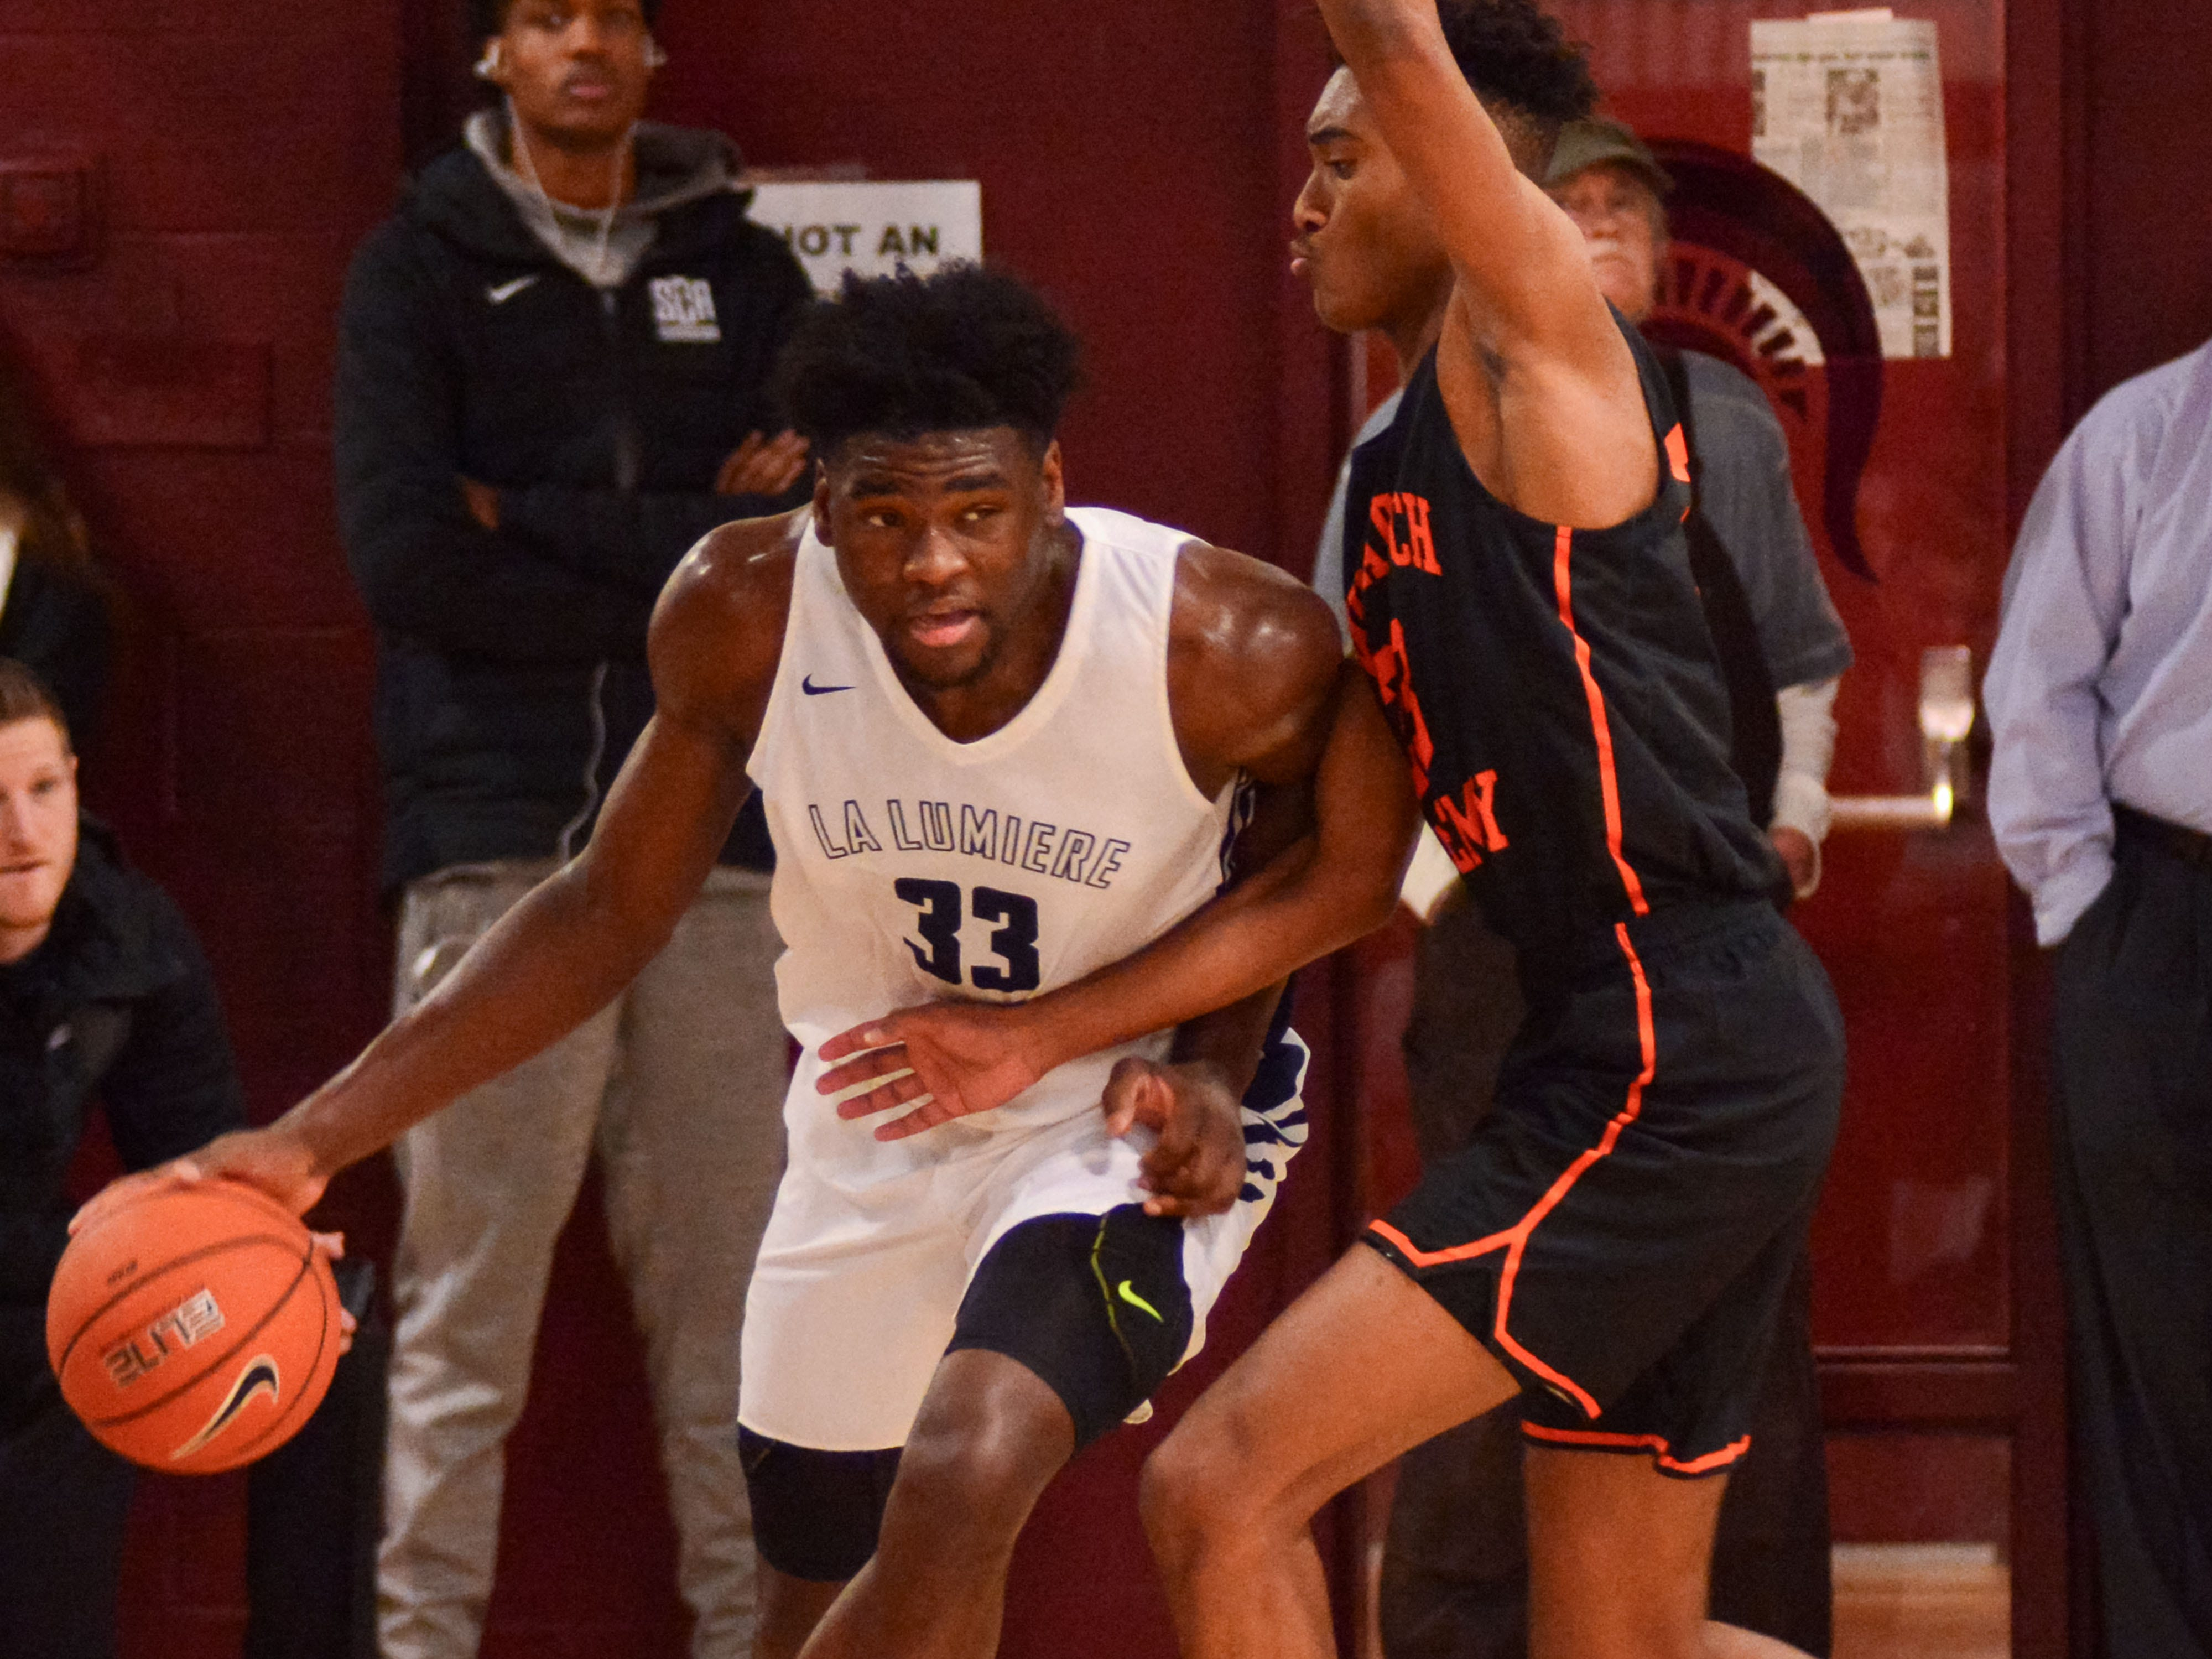 Former McQuaid standout Isaiah Stewart looks to make a move during La Lumiere's win over Wasatch (Utah) at the Bob Kirk Invitational in Cumberland, Maryland.